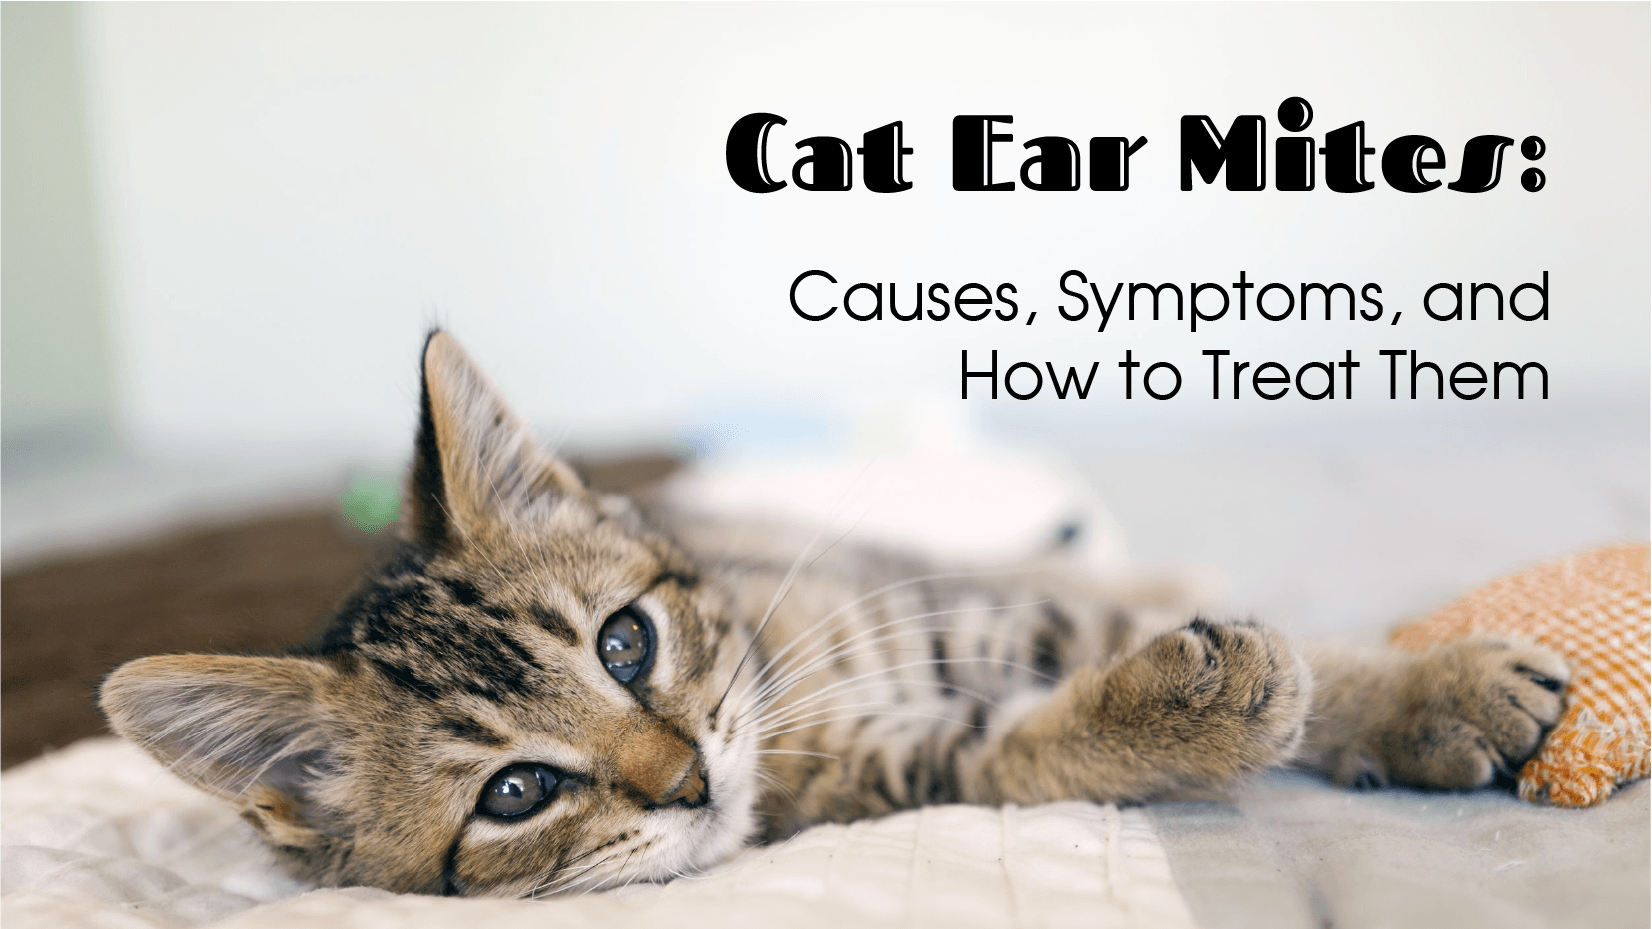 Cat Ear Mites How To Treat Them 2020 Entirelypets,Enchilada Recipe Authentic